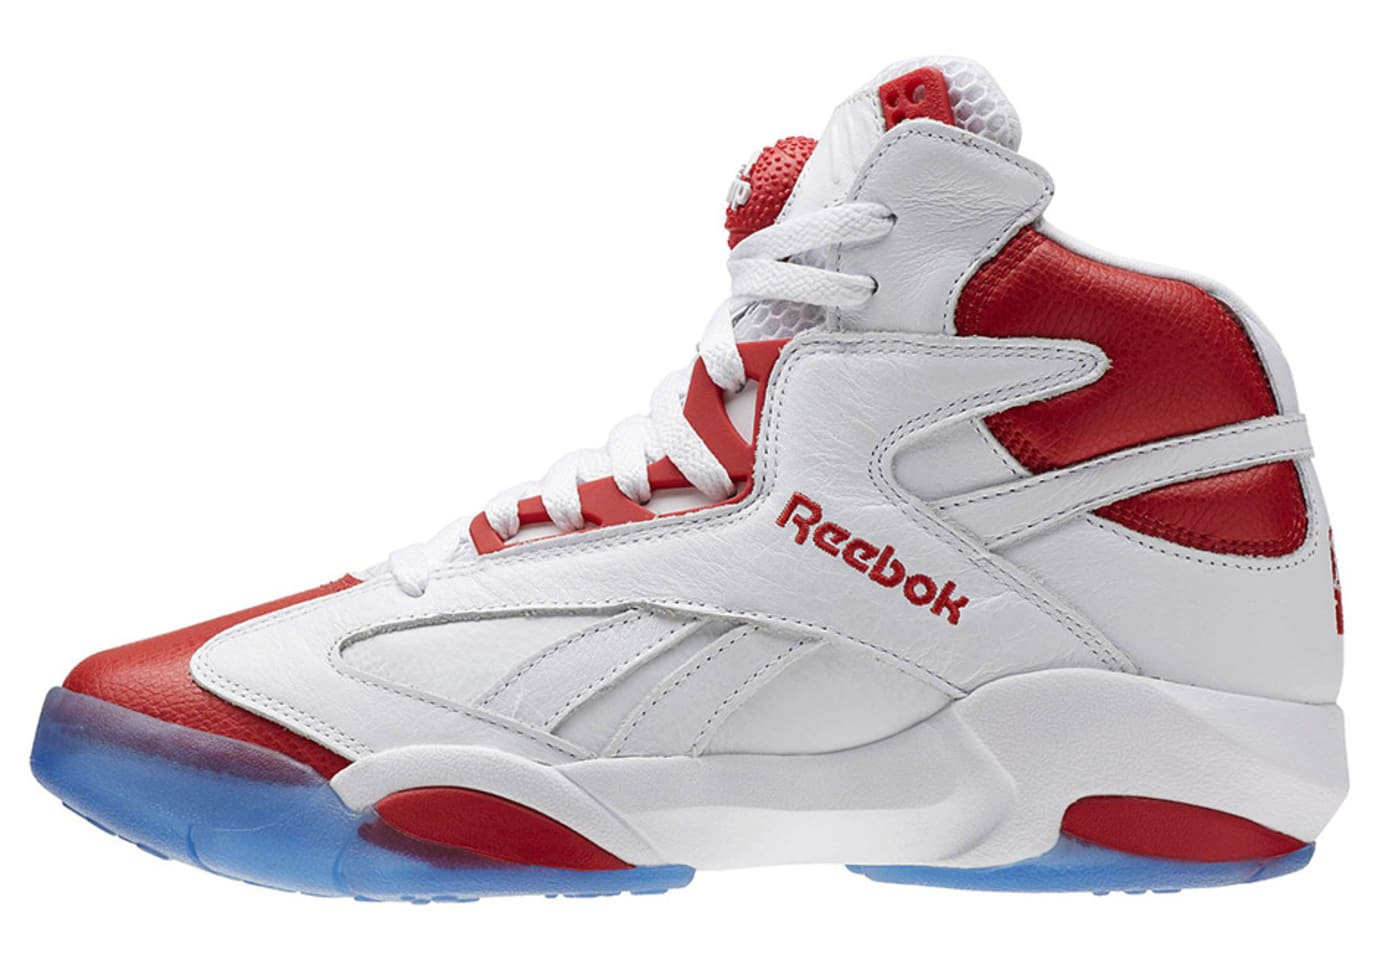 Reebok Shaq Attaq  Quesiton  (Lateral) 5c113a5f8